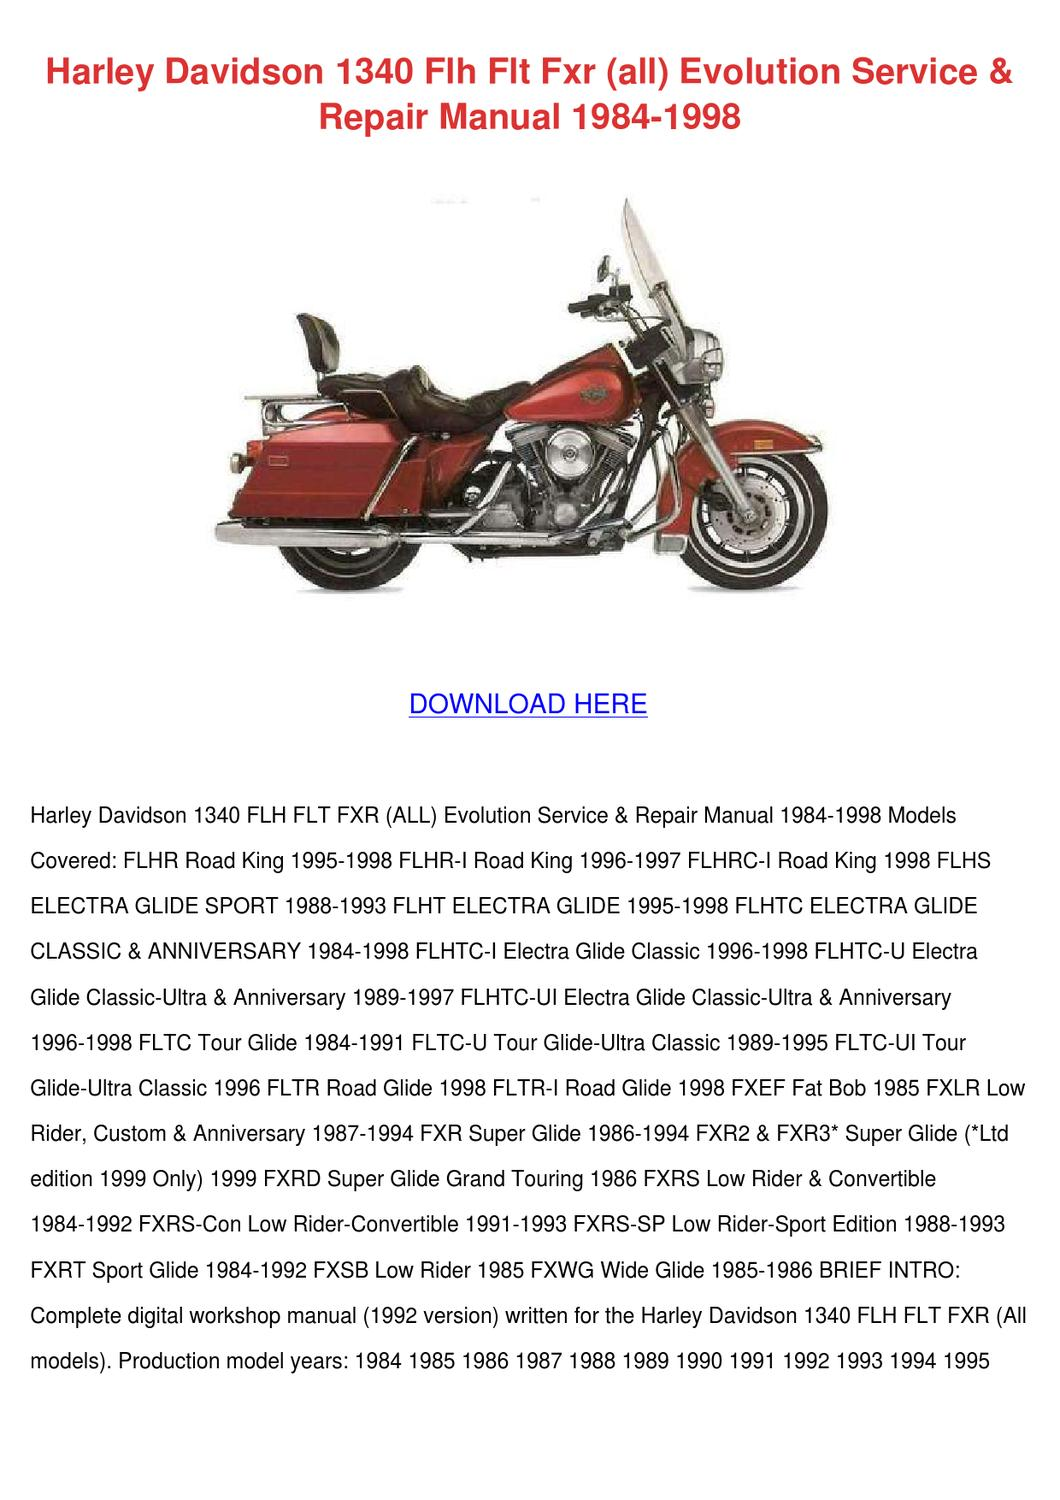 diagrams 6731000 evo motorcycle wiring diagrams lowbrow customs 1975 Harley-Davidson Wiring Diagram  Harley-Davidson Golf Cart Electrical Diagram Simple Harley Wiring Diagram Harley Davidson Parts Identification